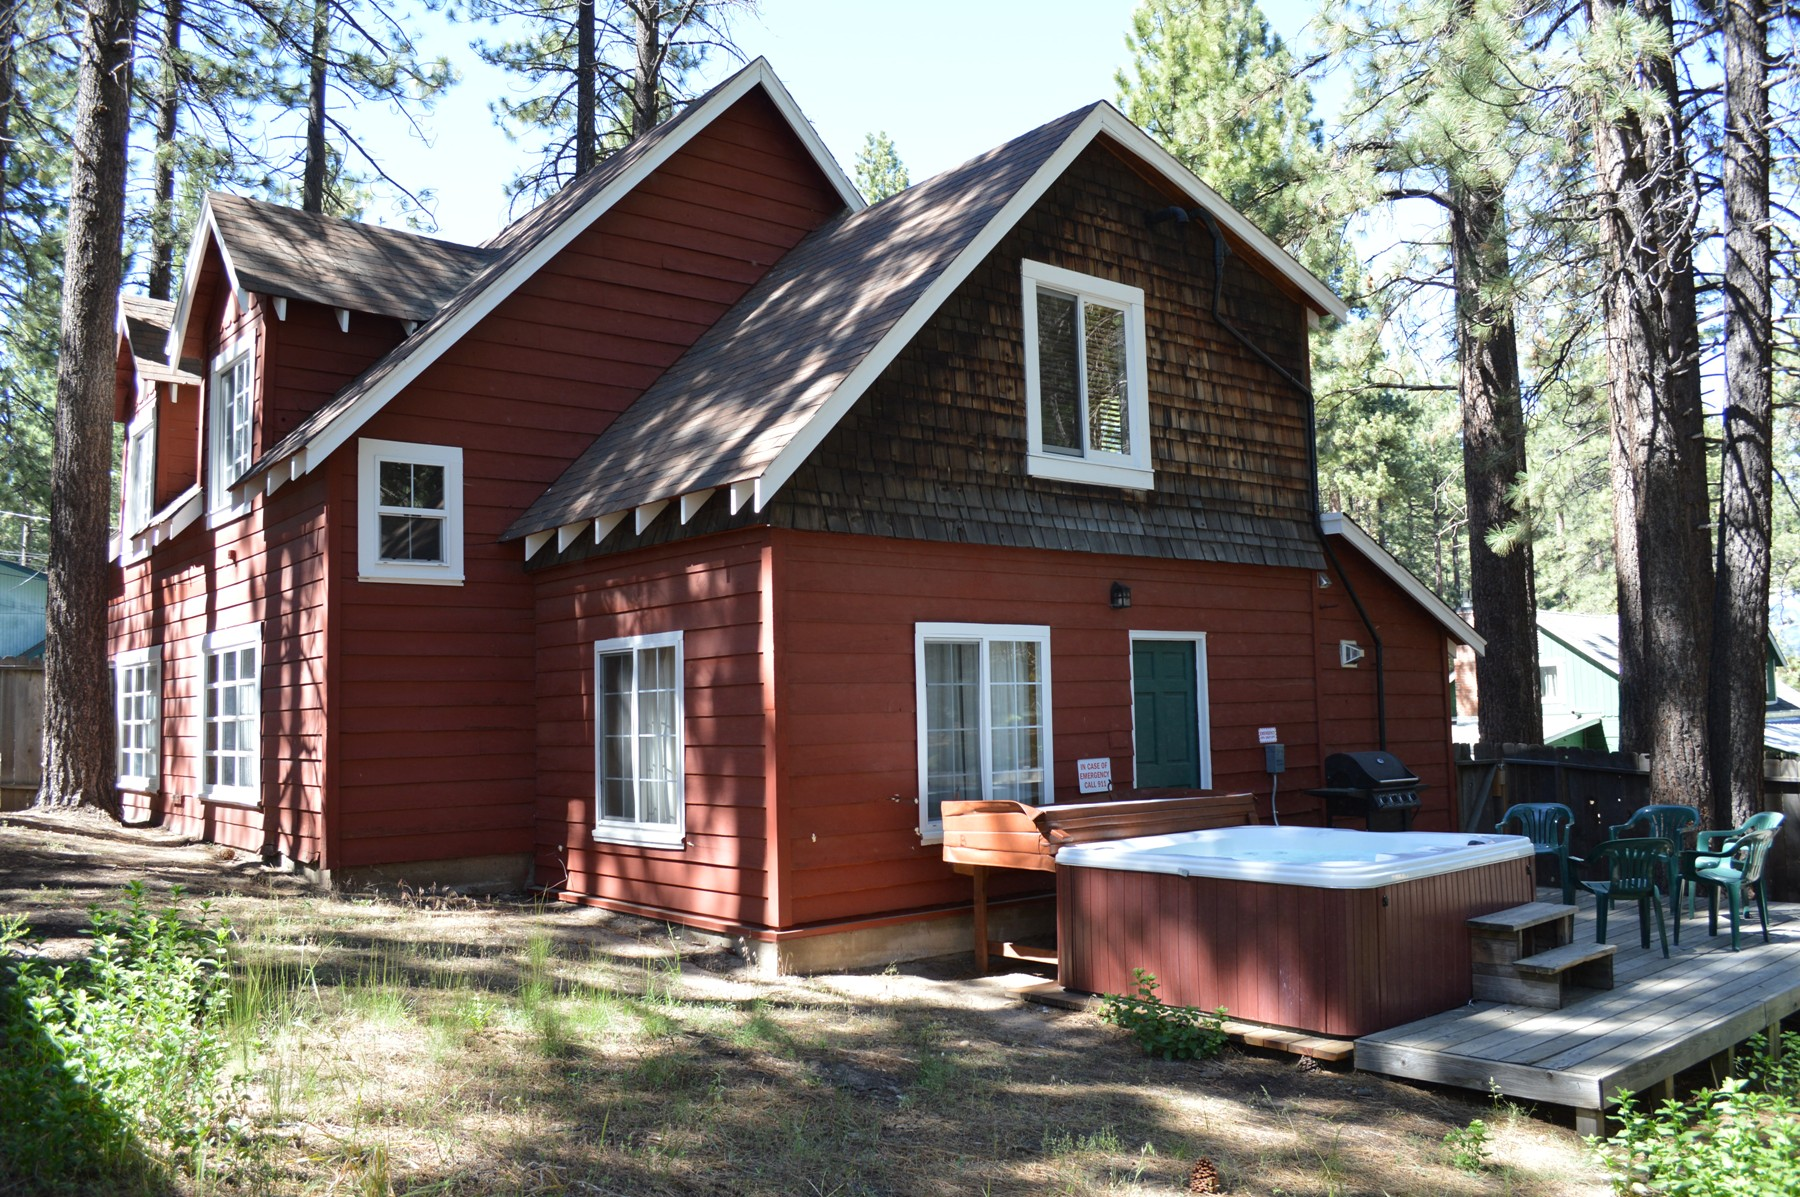 Birch Cabin exterior picture with a hot tub and patio furniture